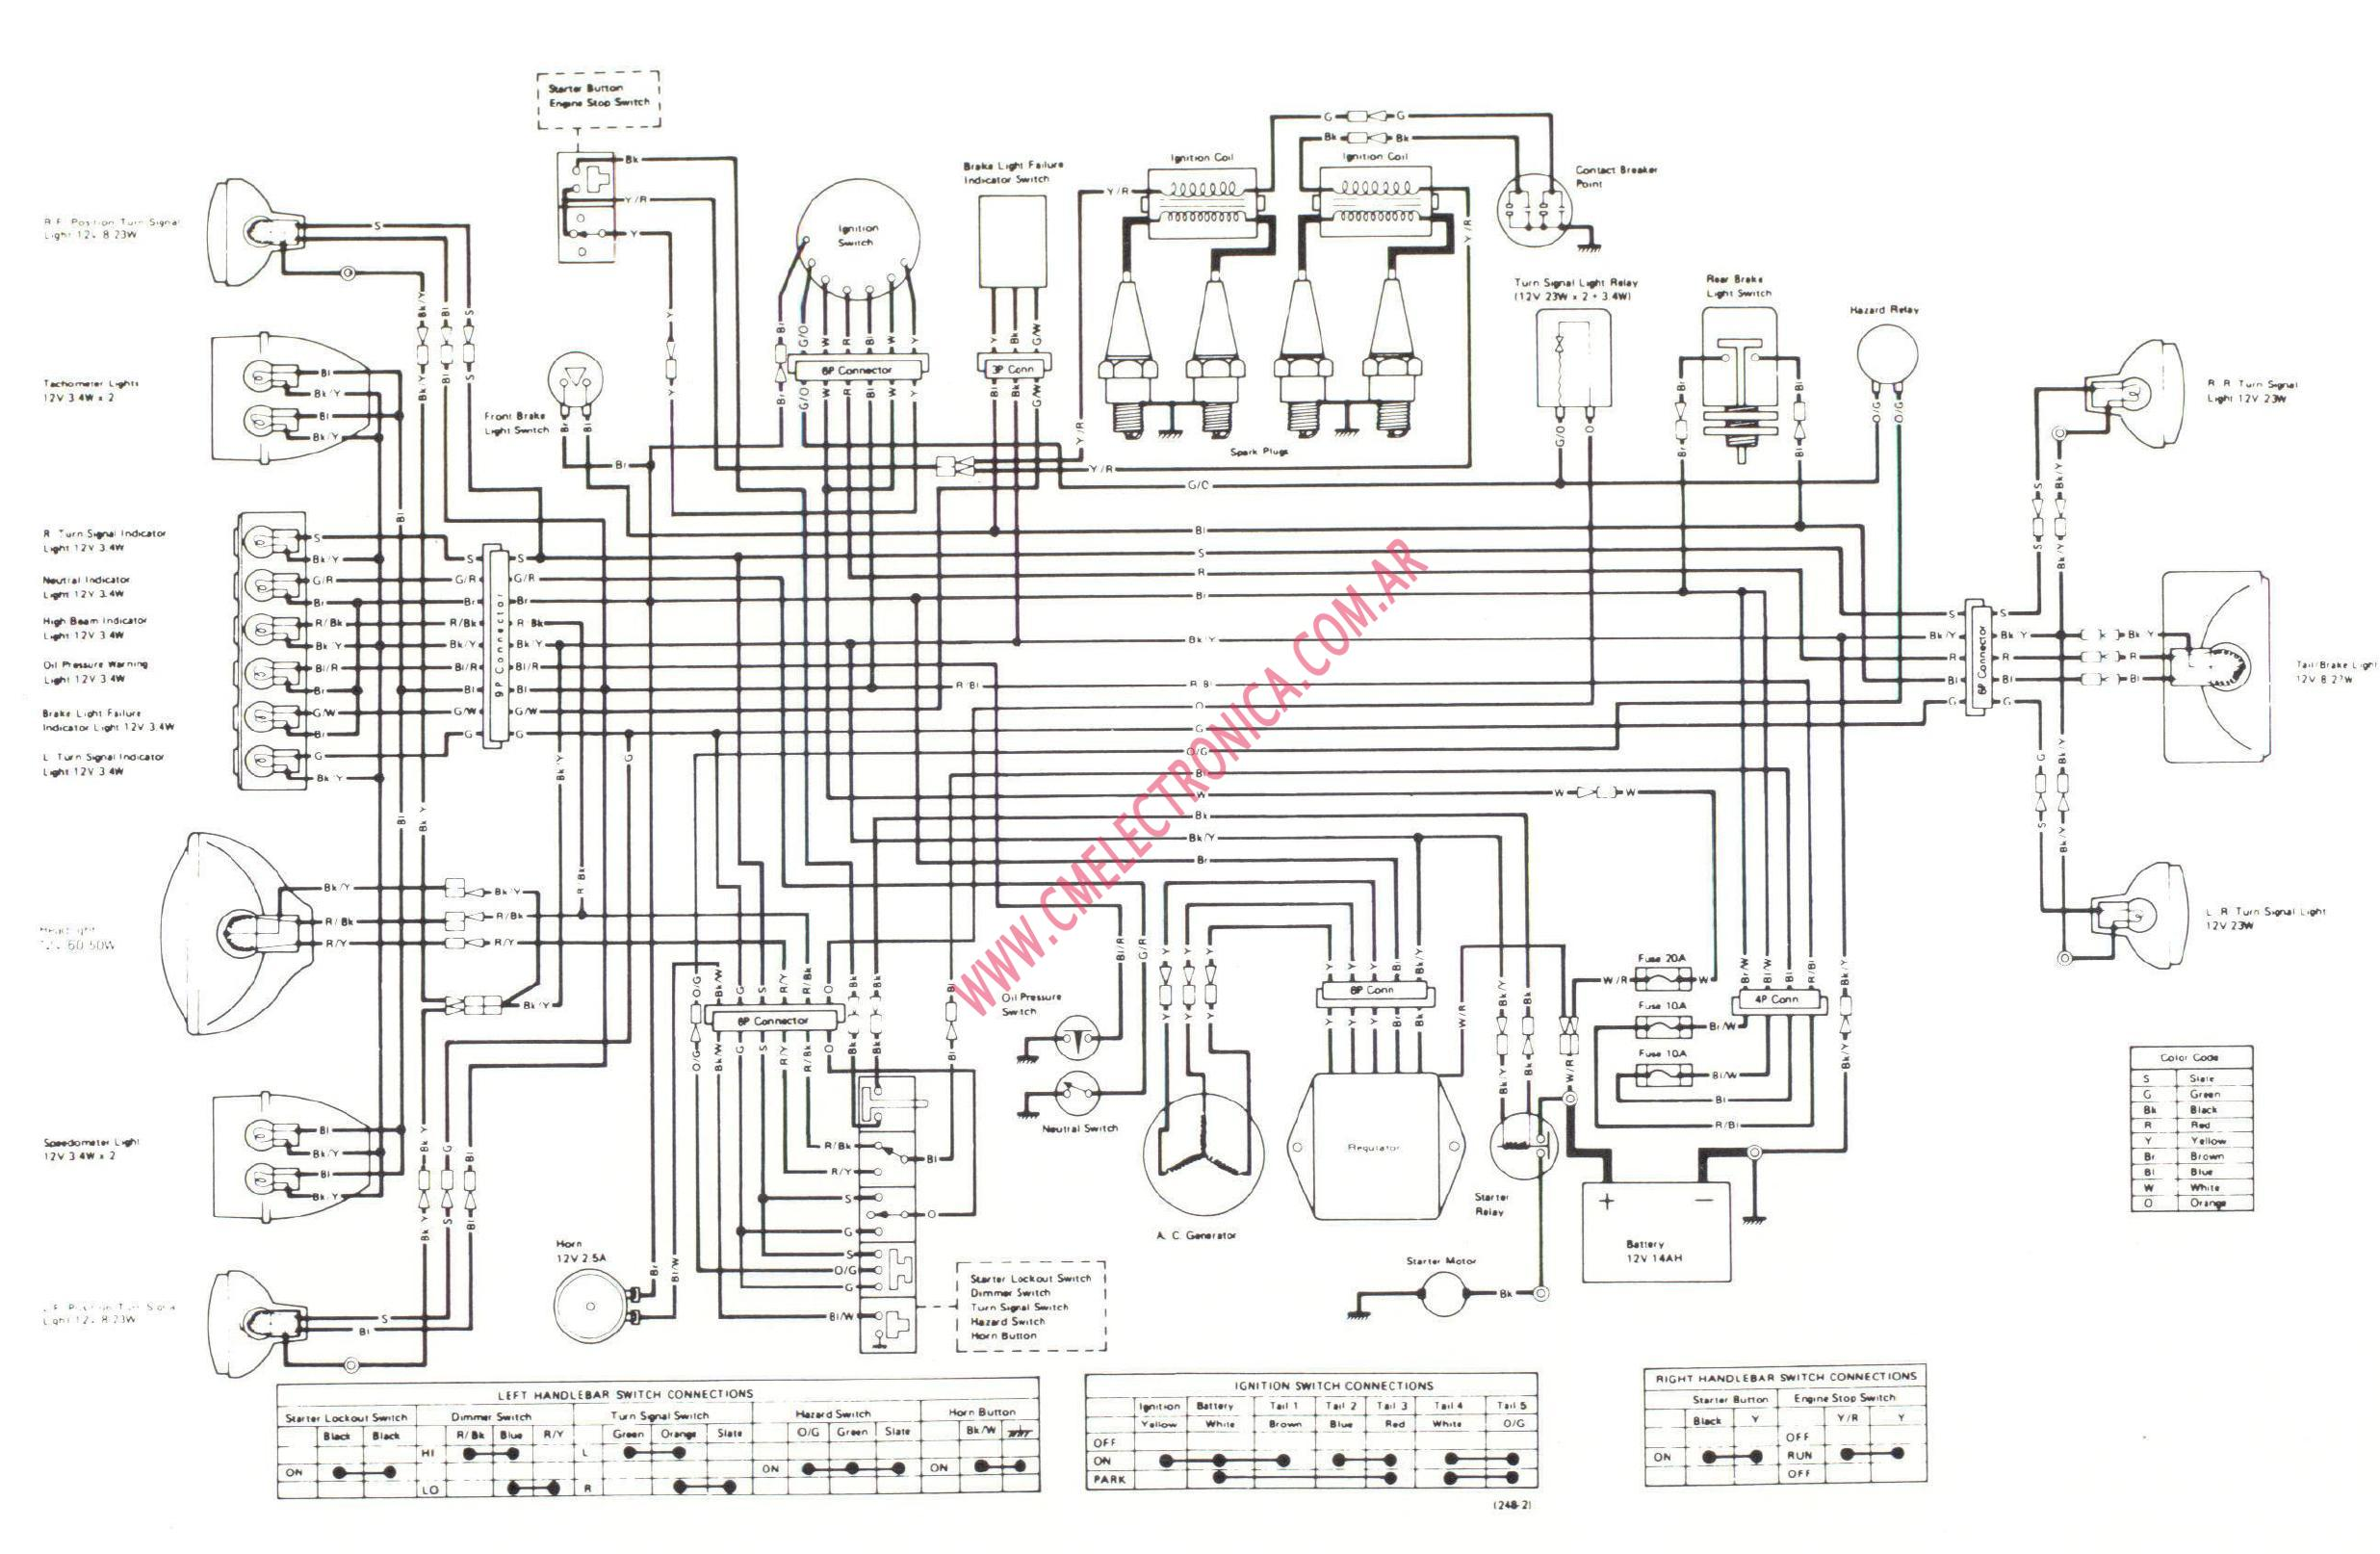 WRG-7488] 2007 Kawasaki Ninja 250 Wiring Diagram on